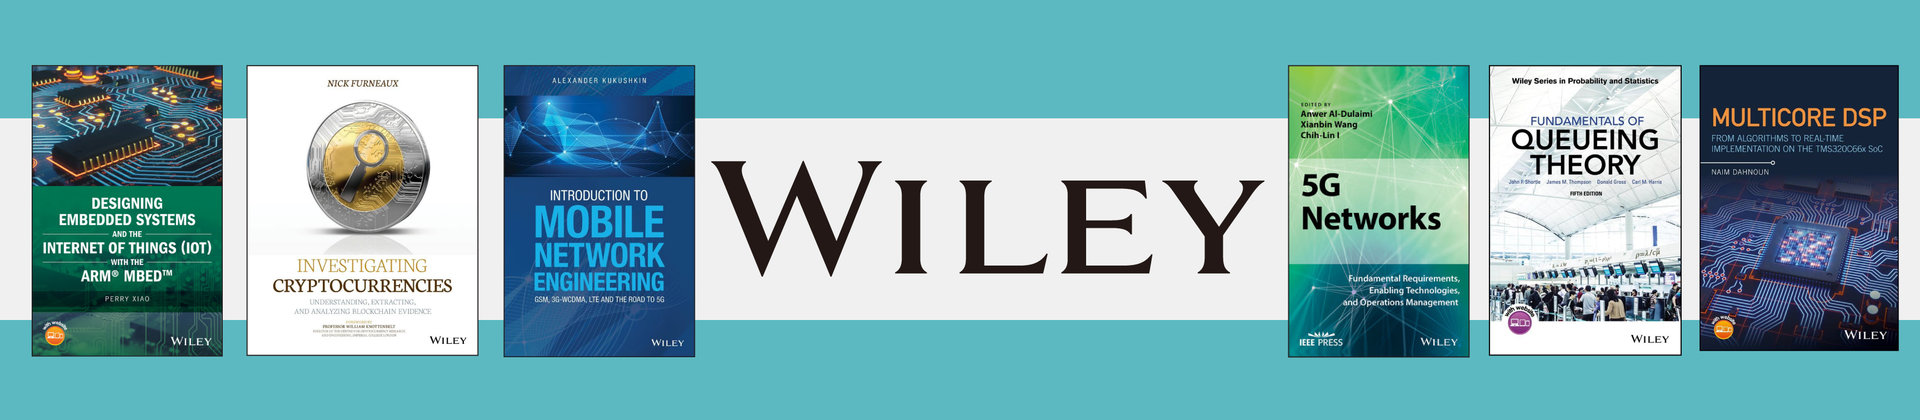 Wiley bn